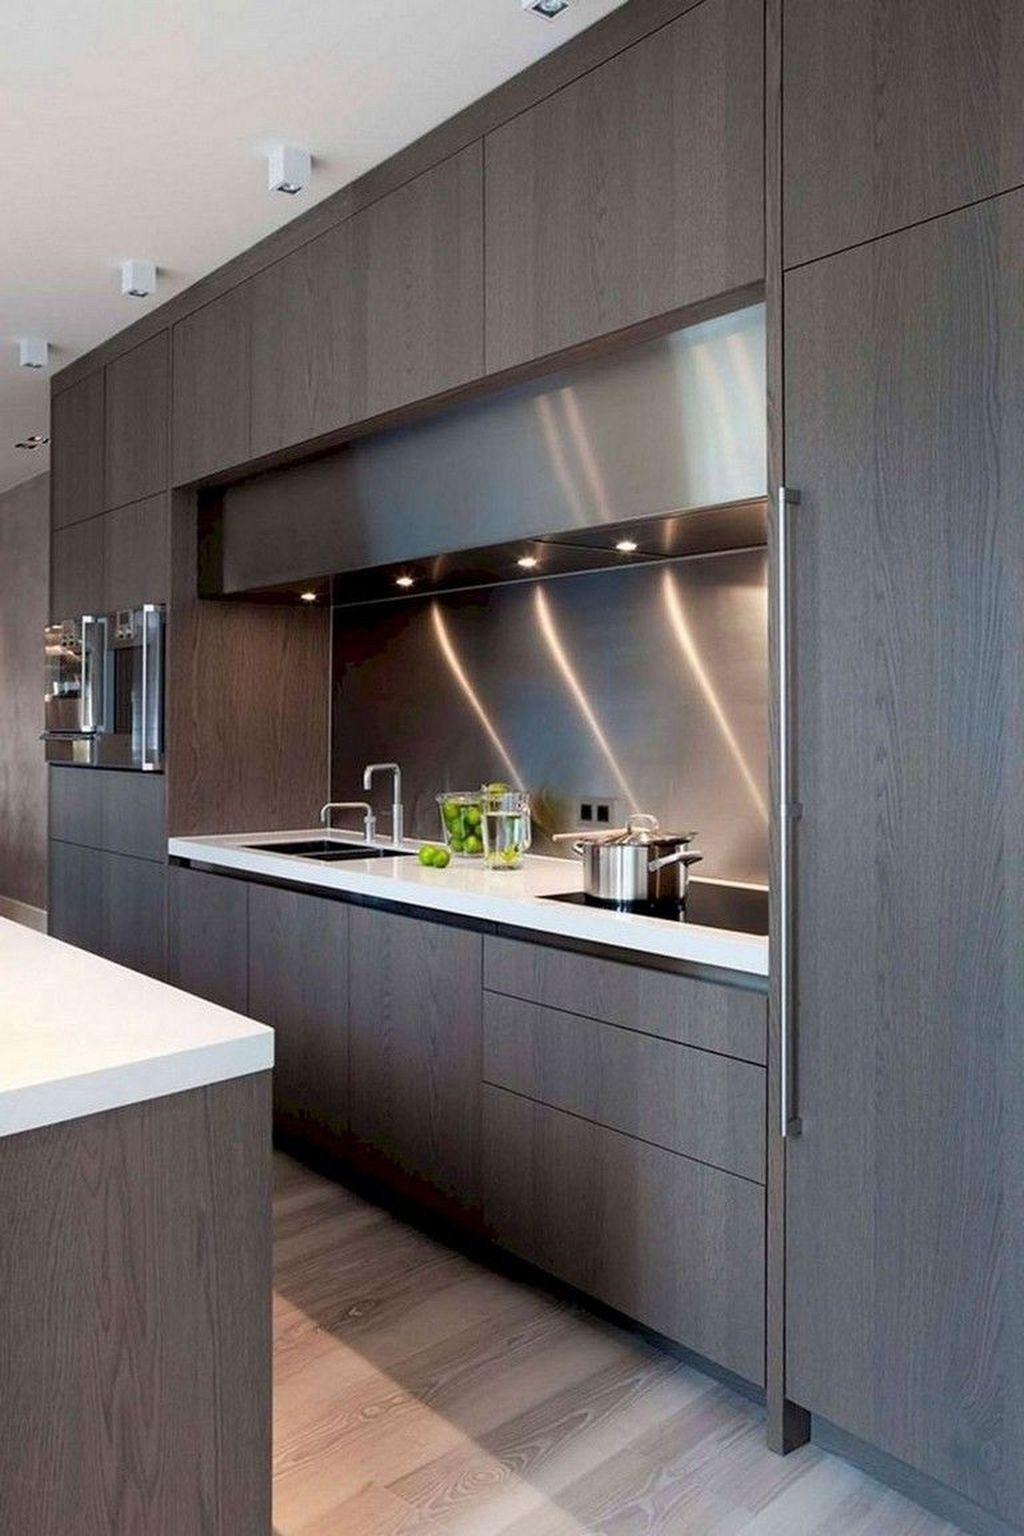 20 Impressive Kitchen Cabinet Design Ideas For Your Inspiration